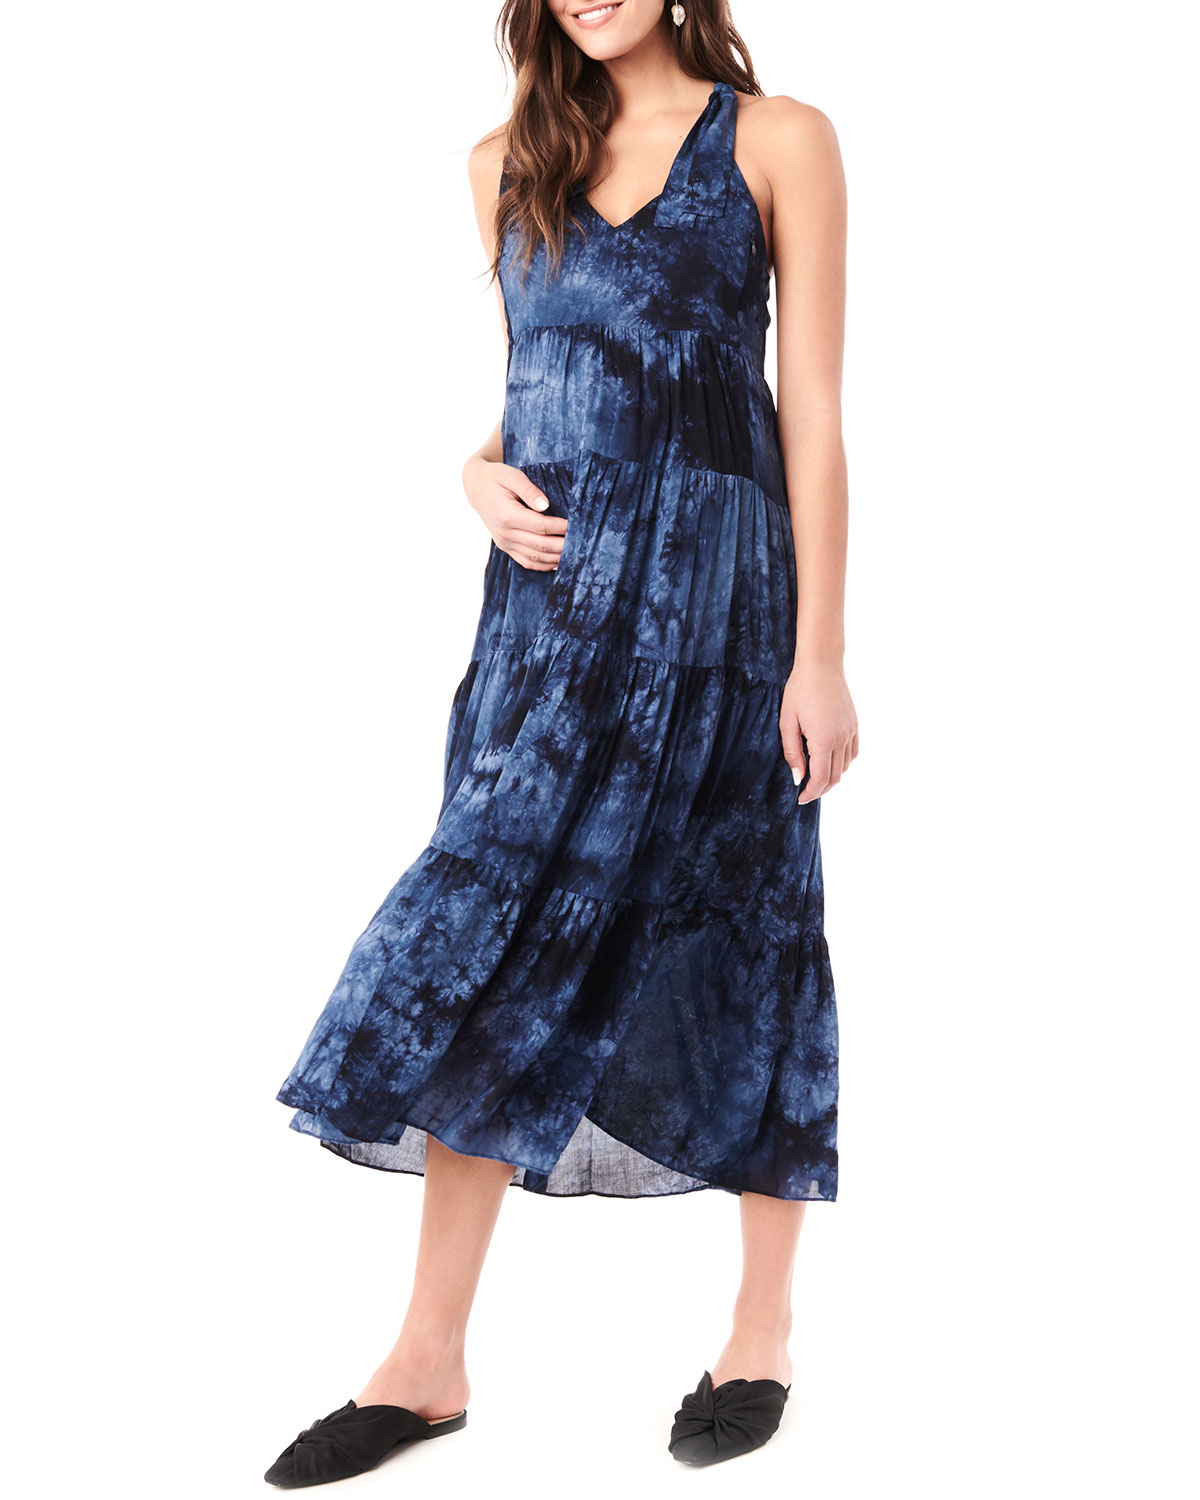 Maternity Rio Tie Dyed Tiered Racerback Dress